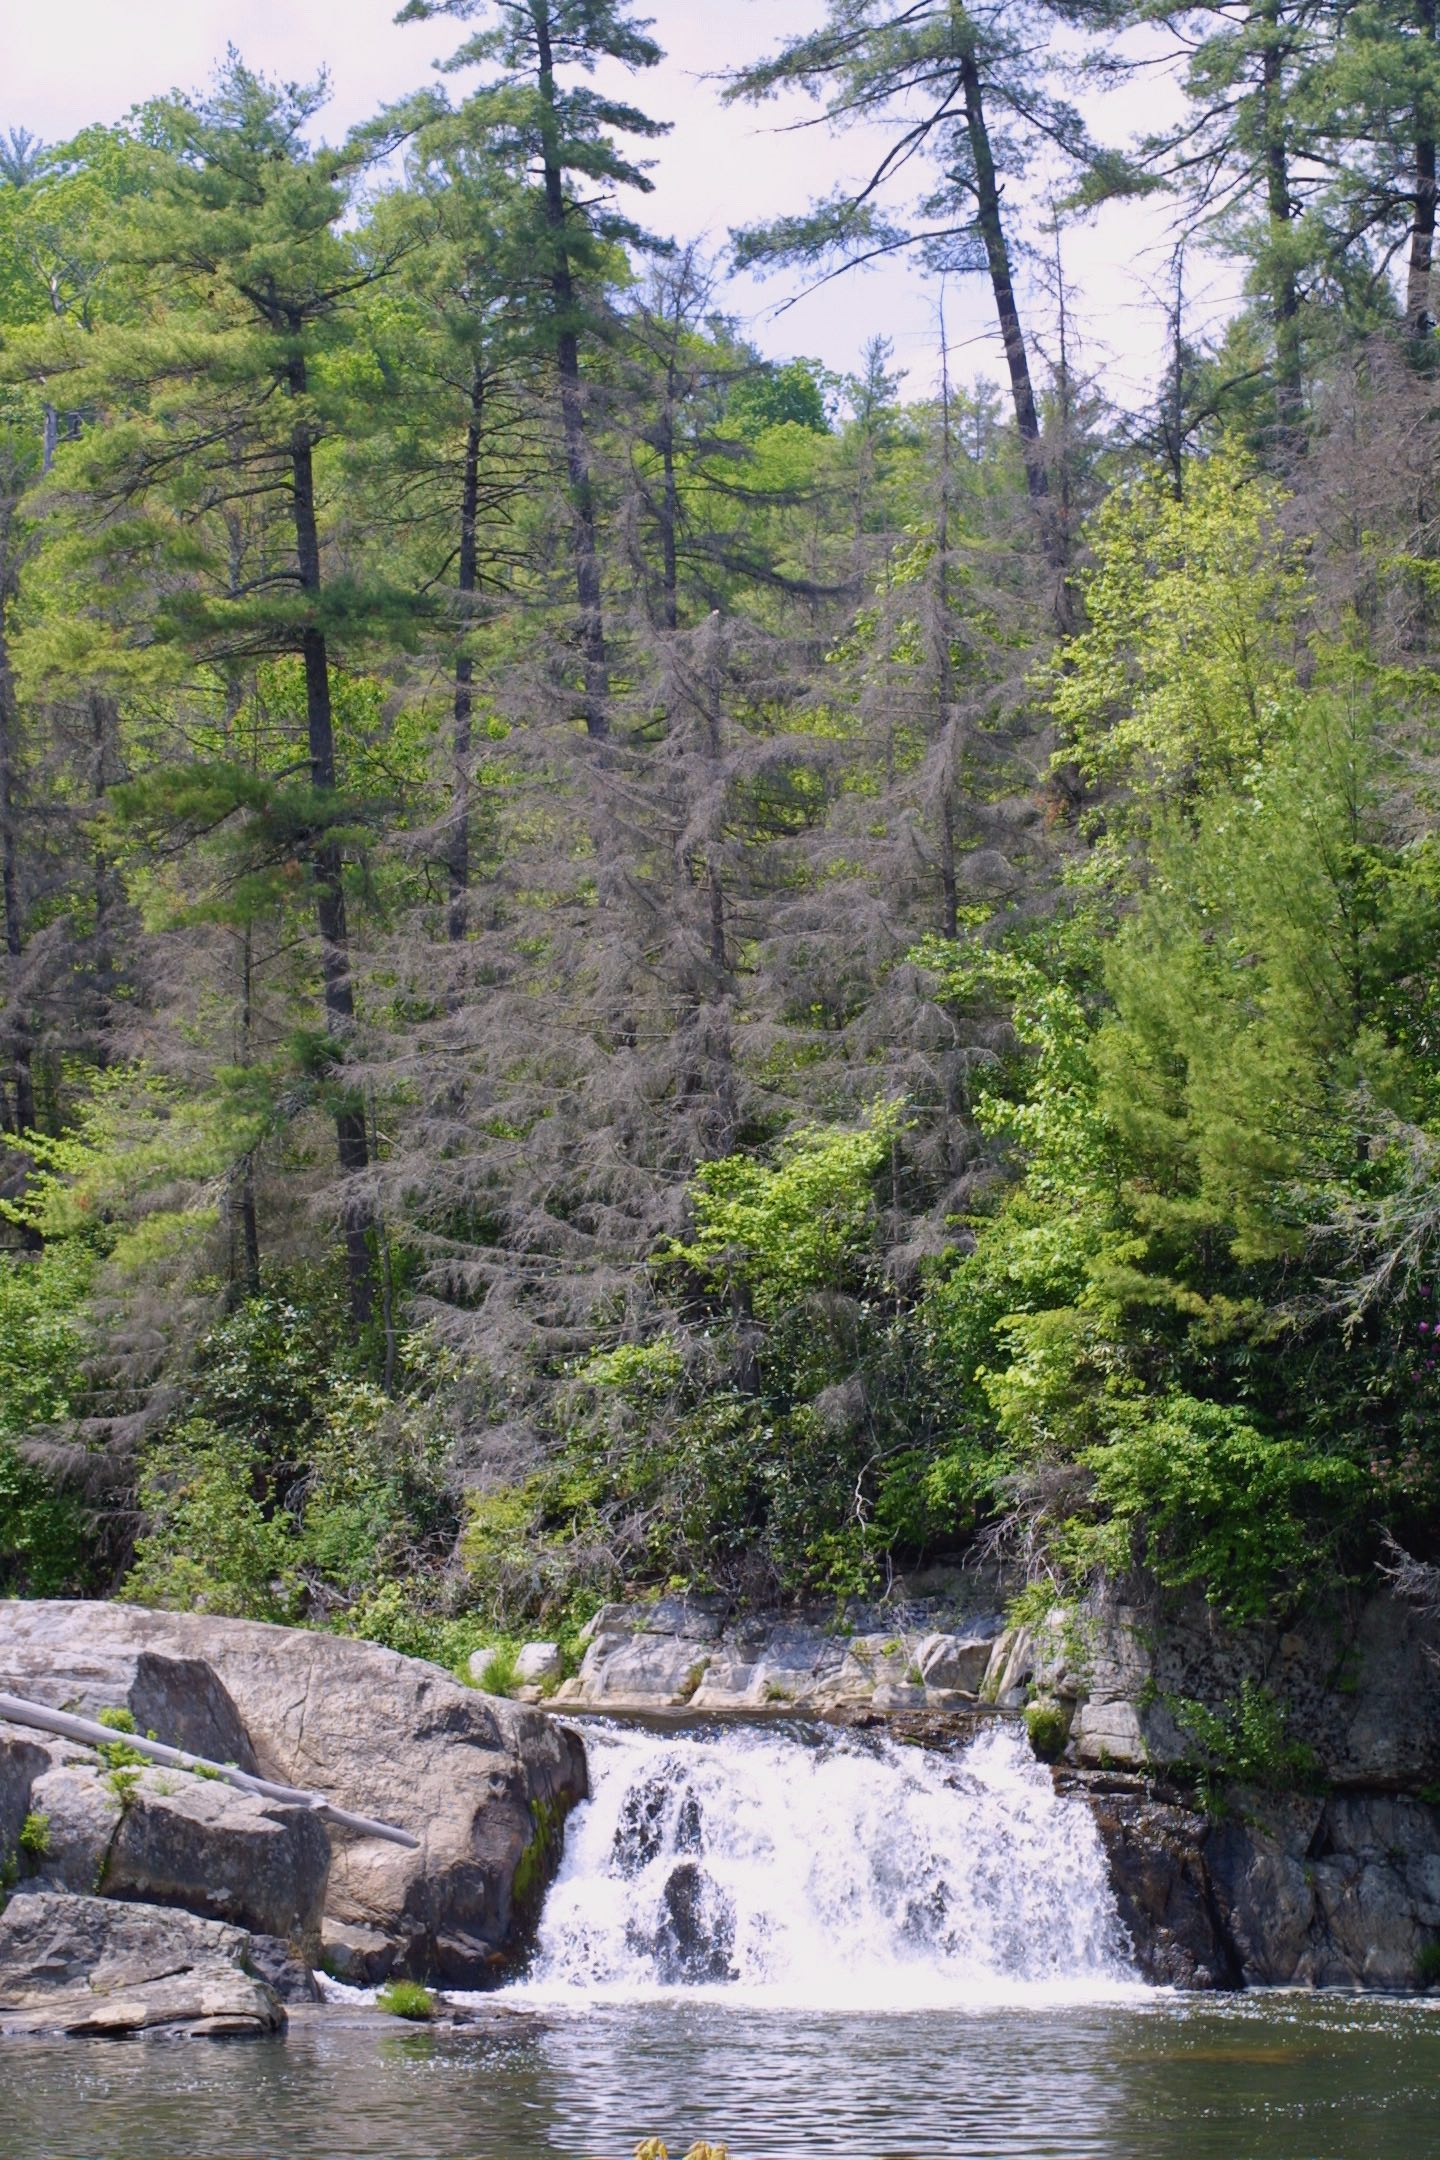 The Scientific Name is Tsuga canadensis. You will likely hear them called Eastern Hemlock, Canada Hemlock, Canadian Hemlock. This picture shows the Trees killed by the Hemlock Woolly Adelgid of Tsuga canadensis